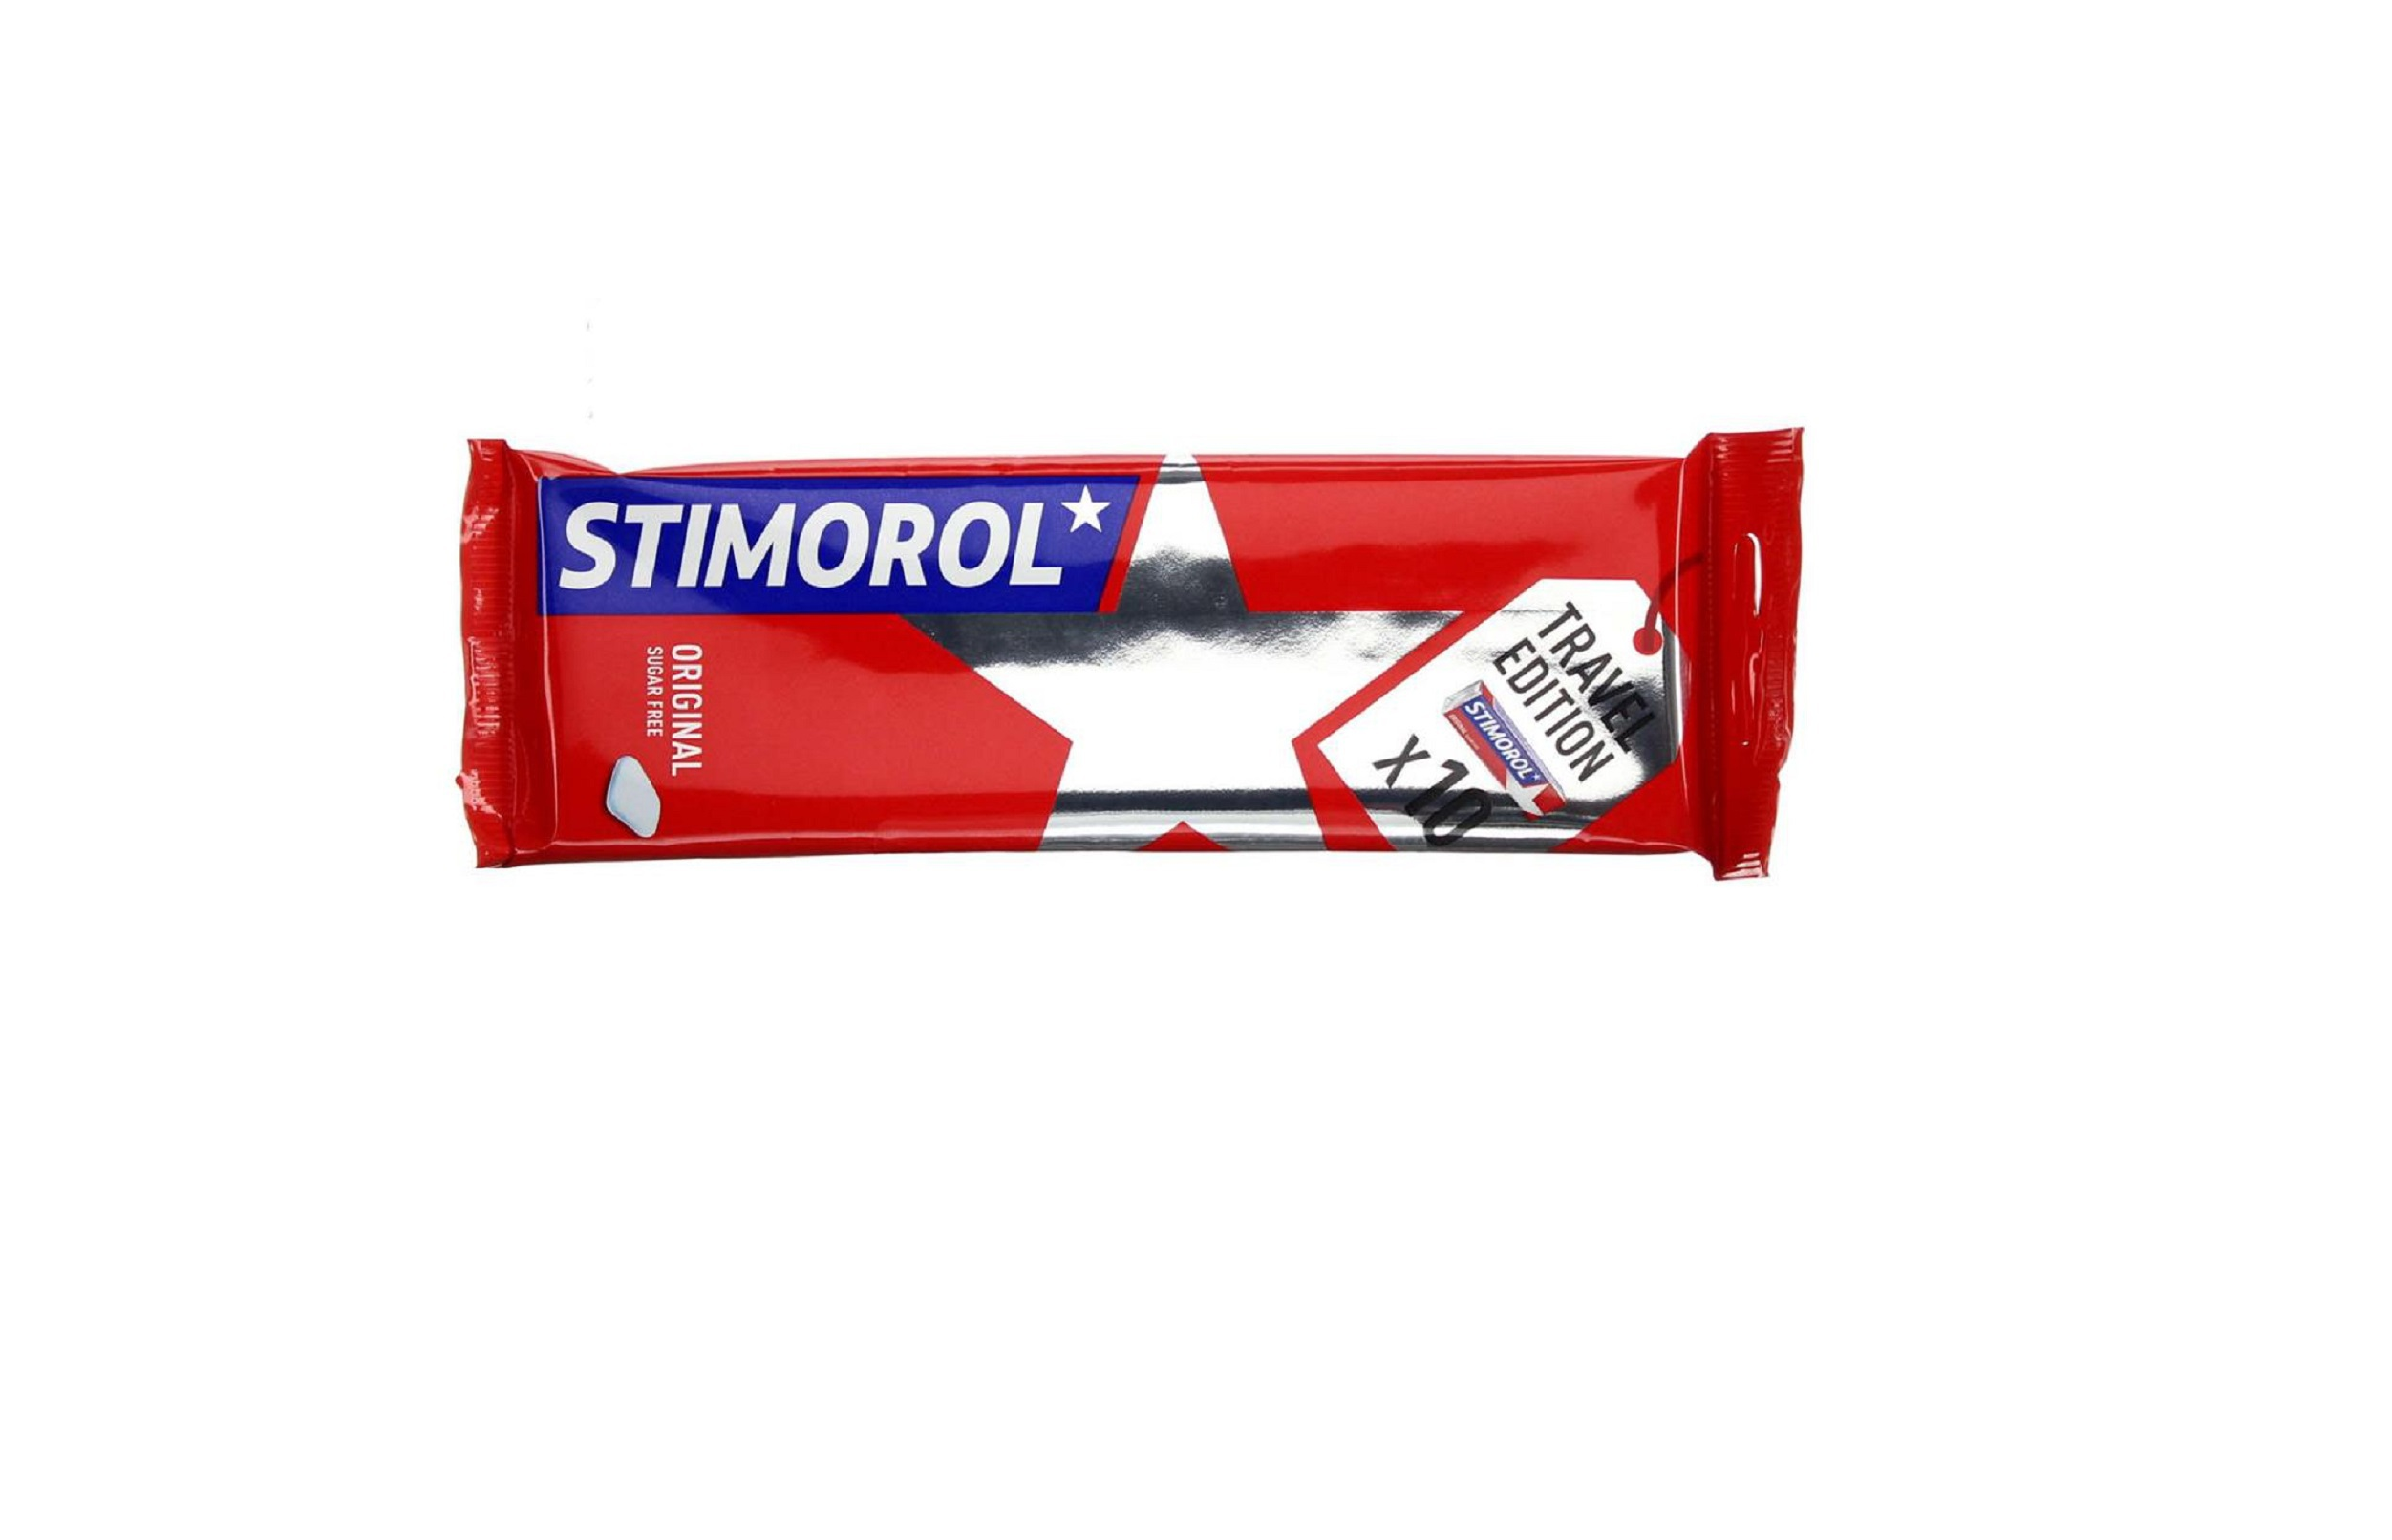 Stimorol High Definition Wallpapers